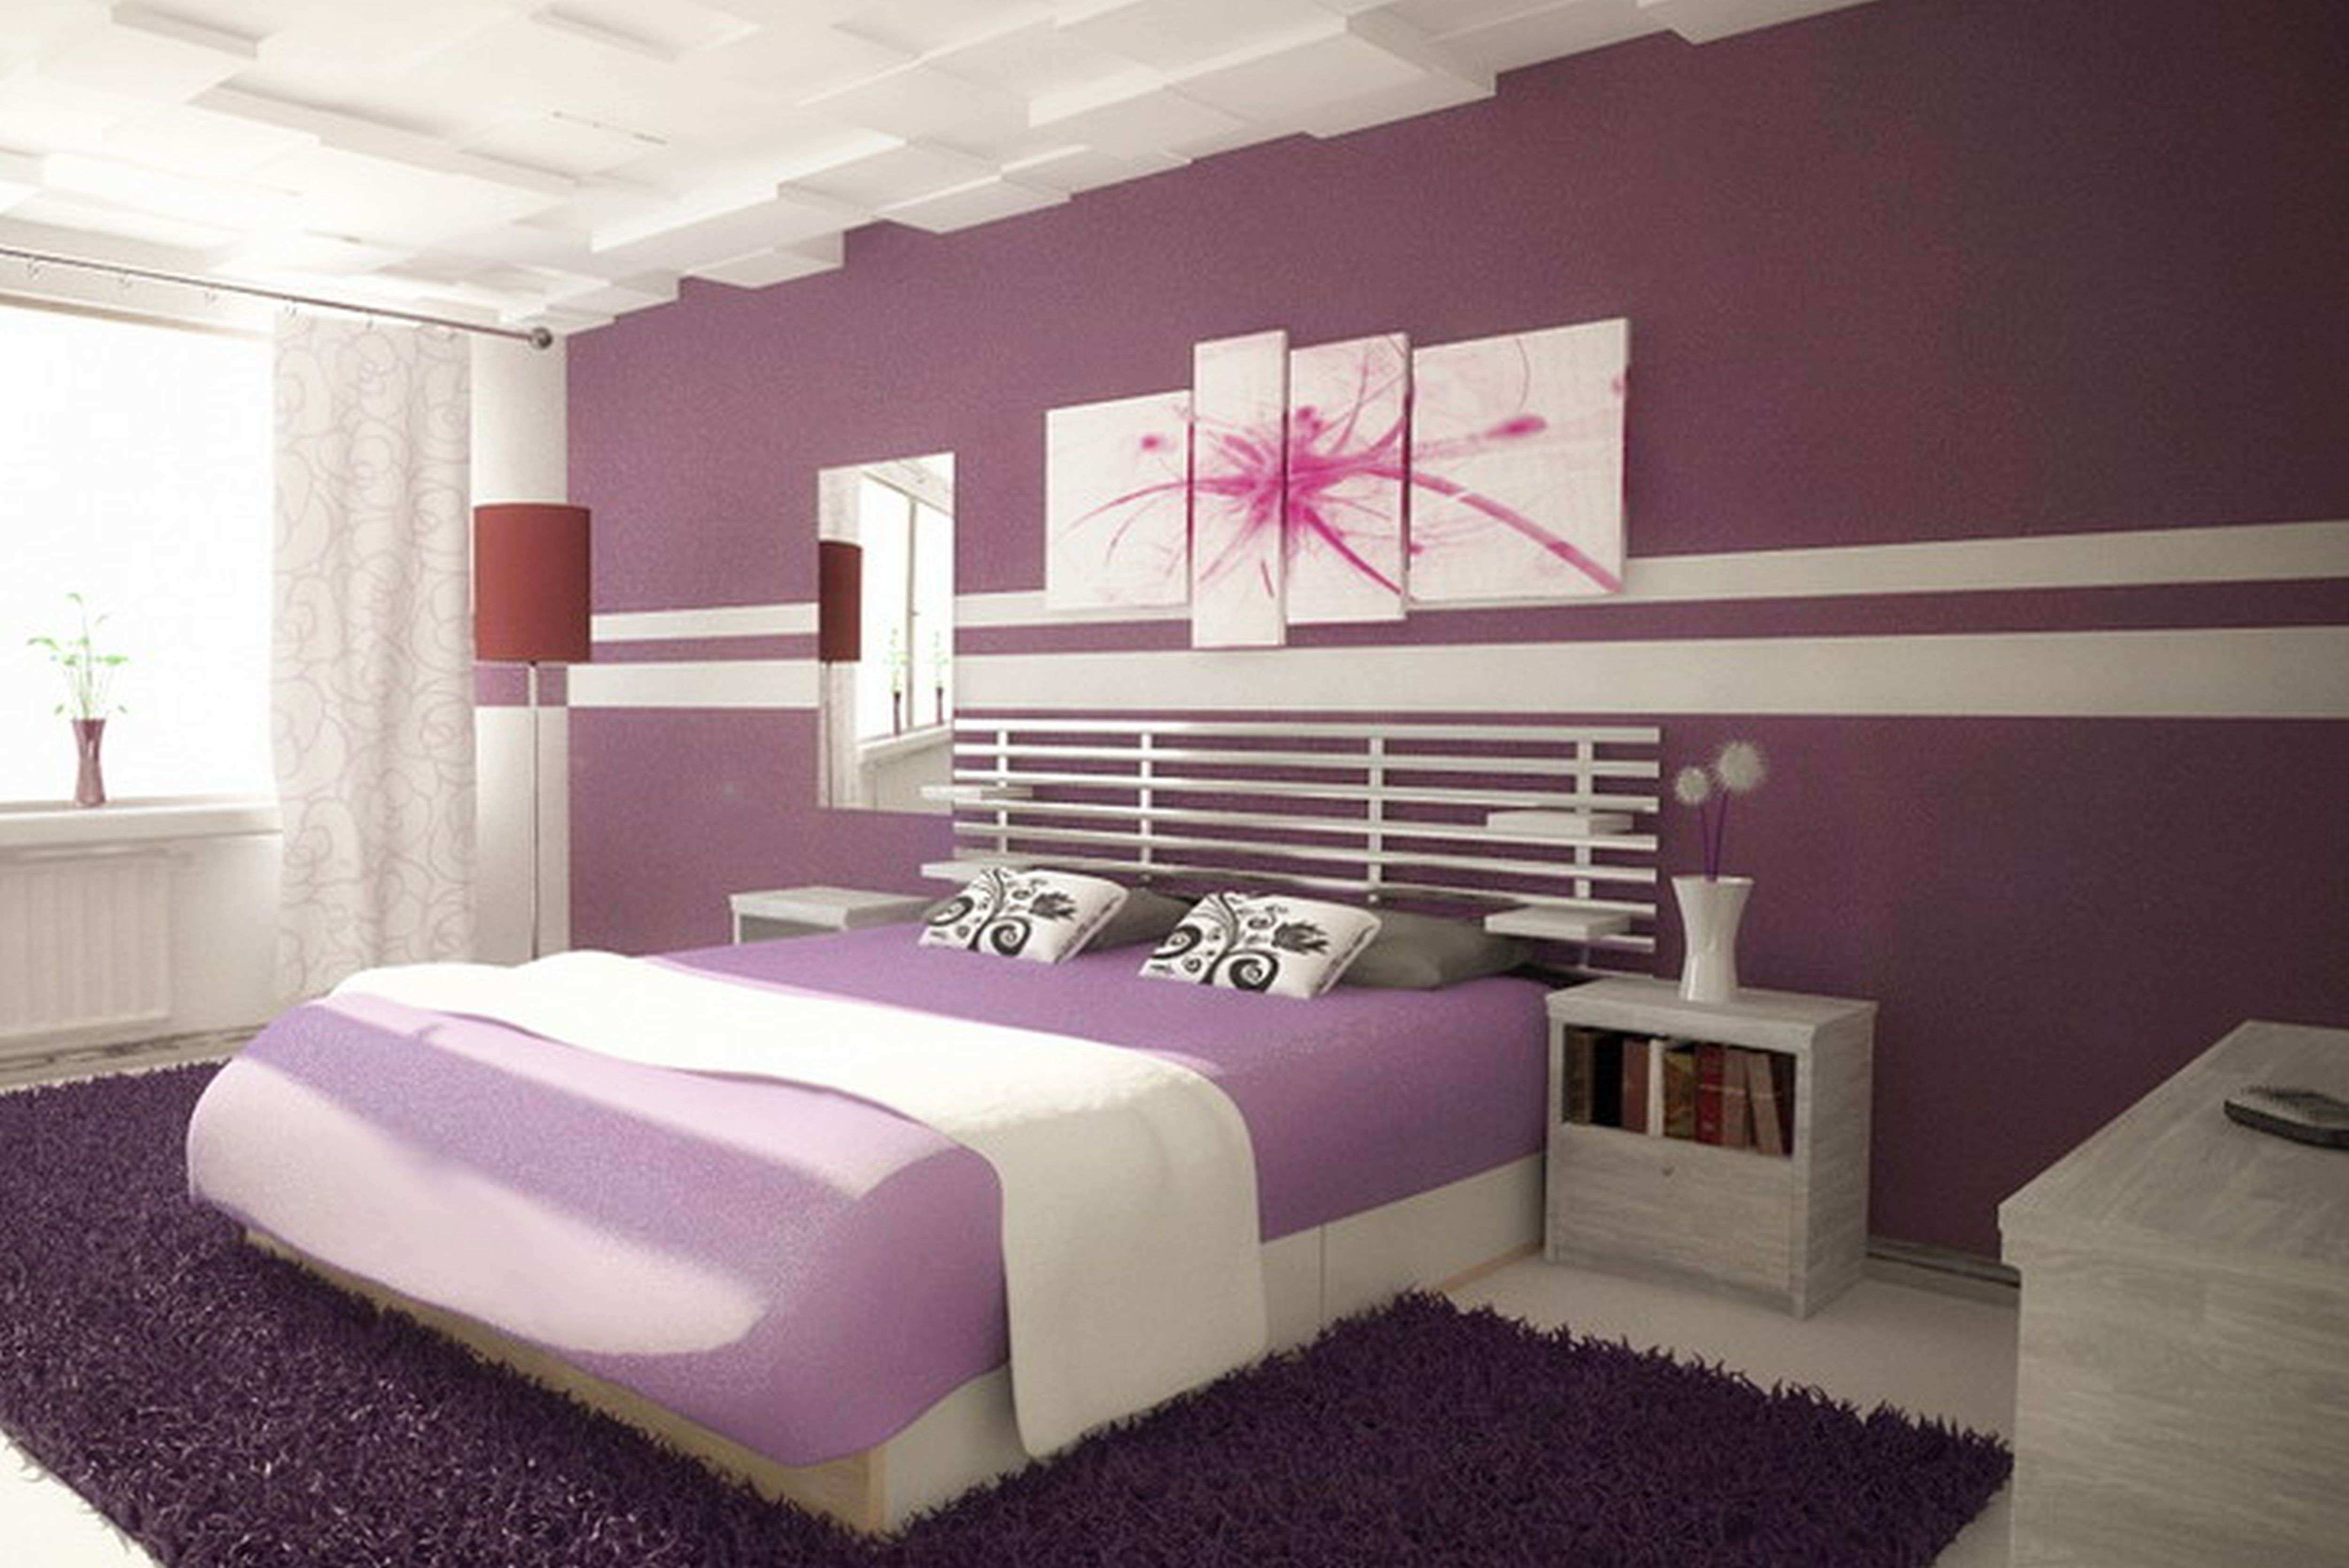 Paint Designs For Bedroom Engaging Paint Designs For Bedroom